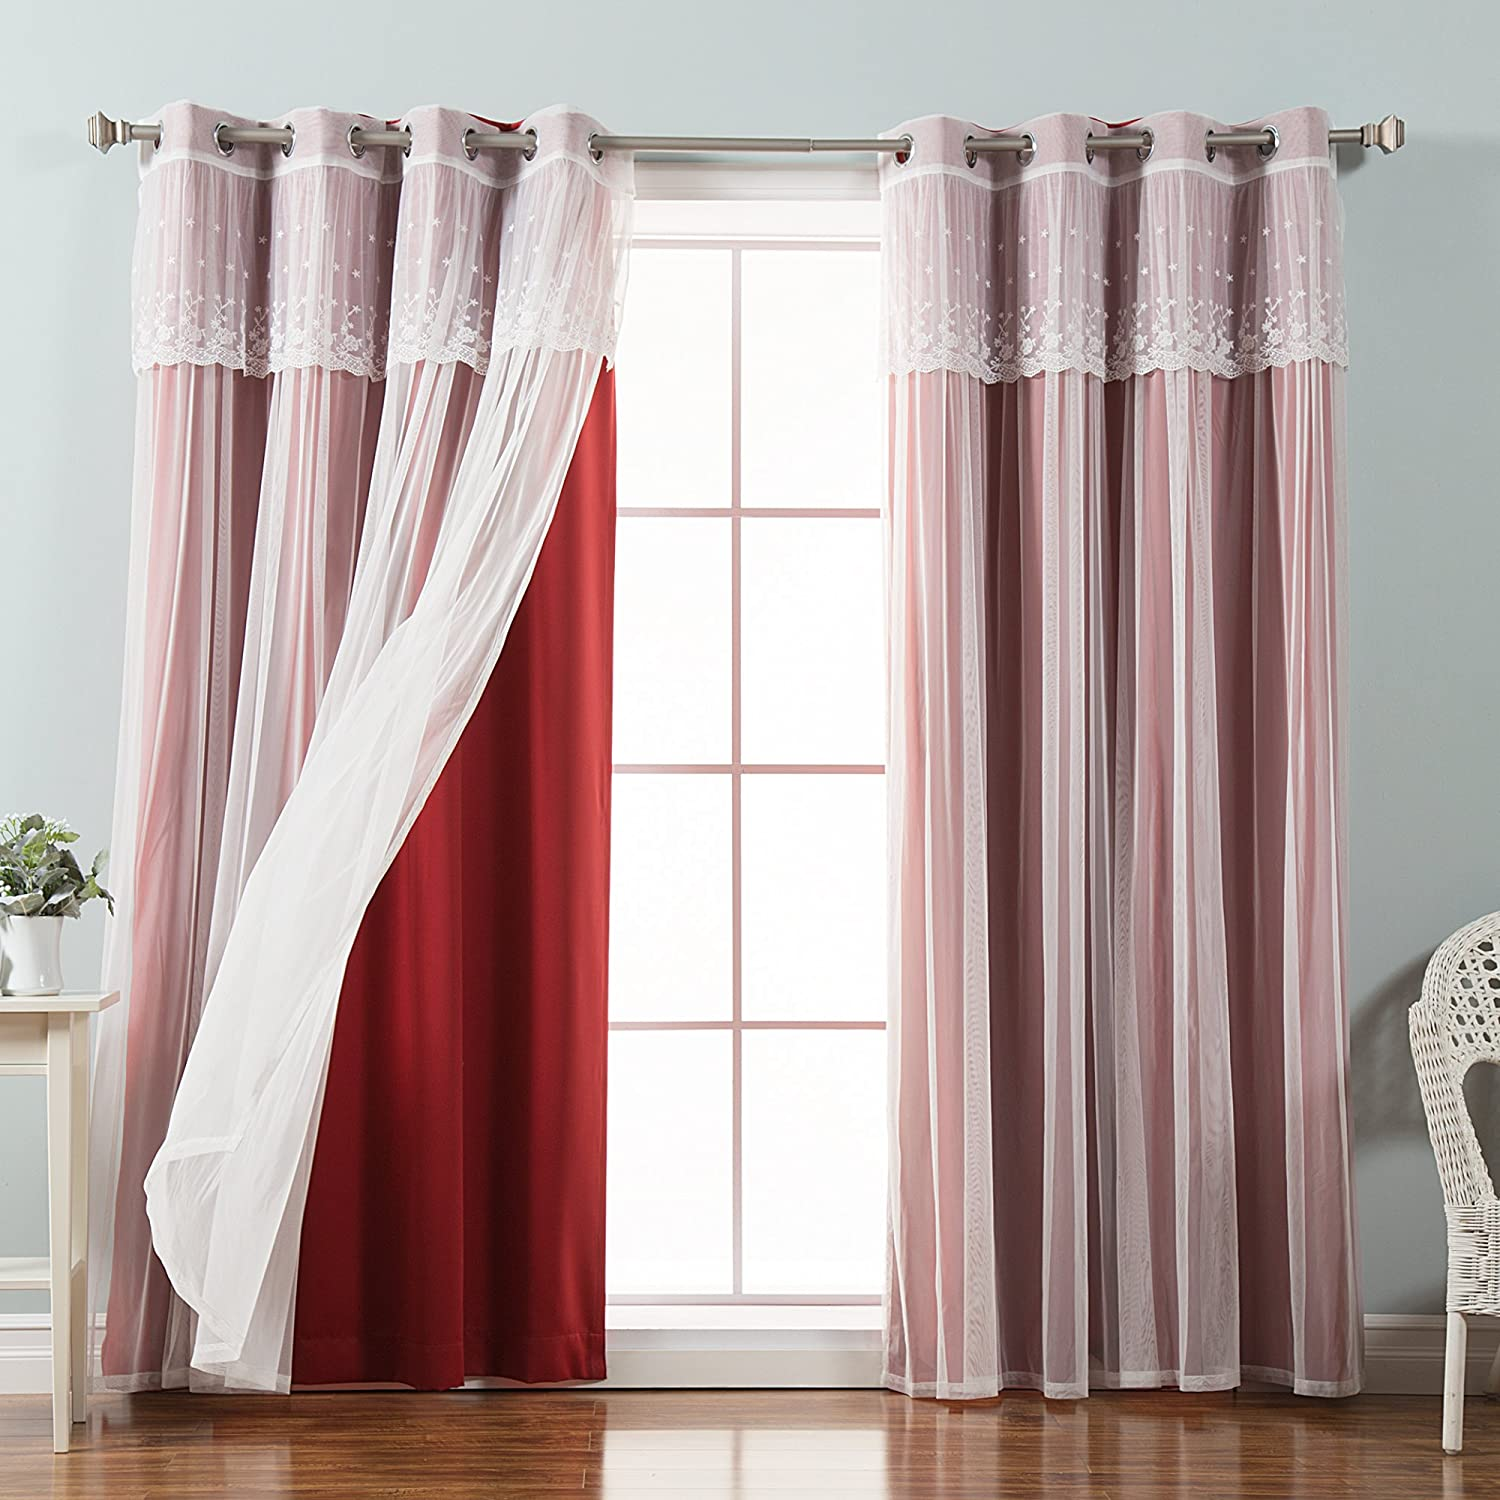 Best Home Fashion Mix & Match Tulle Sheer with Attached Valance & Solid Blackout Curtain Set, Stainless Steel Nickel Grommet Top, Cardinal Red